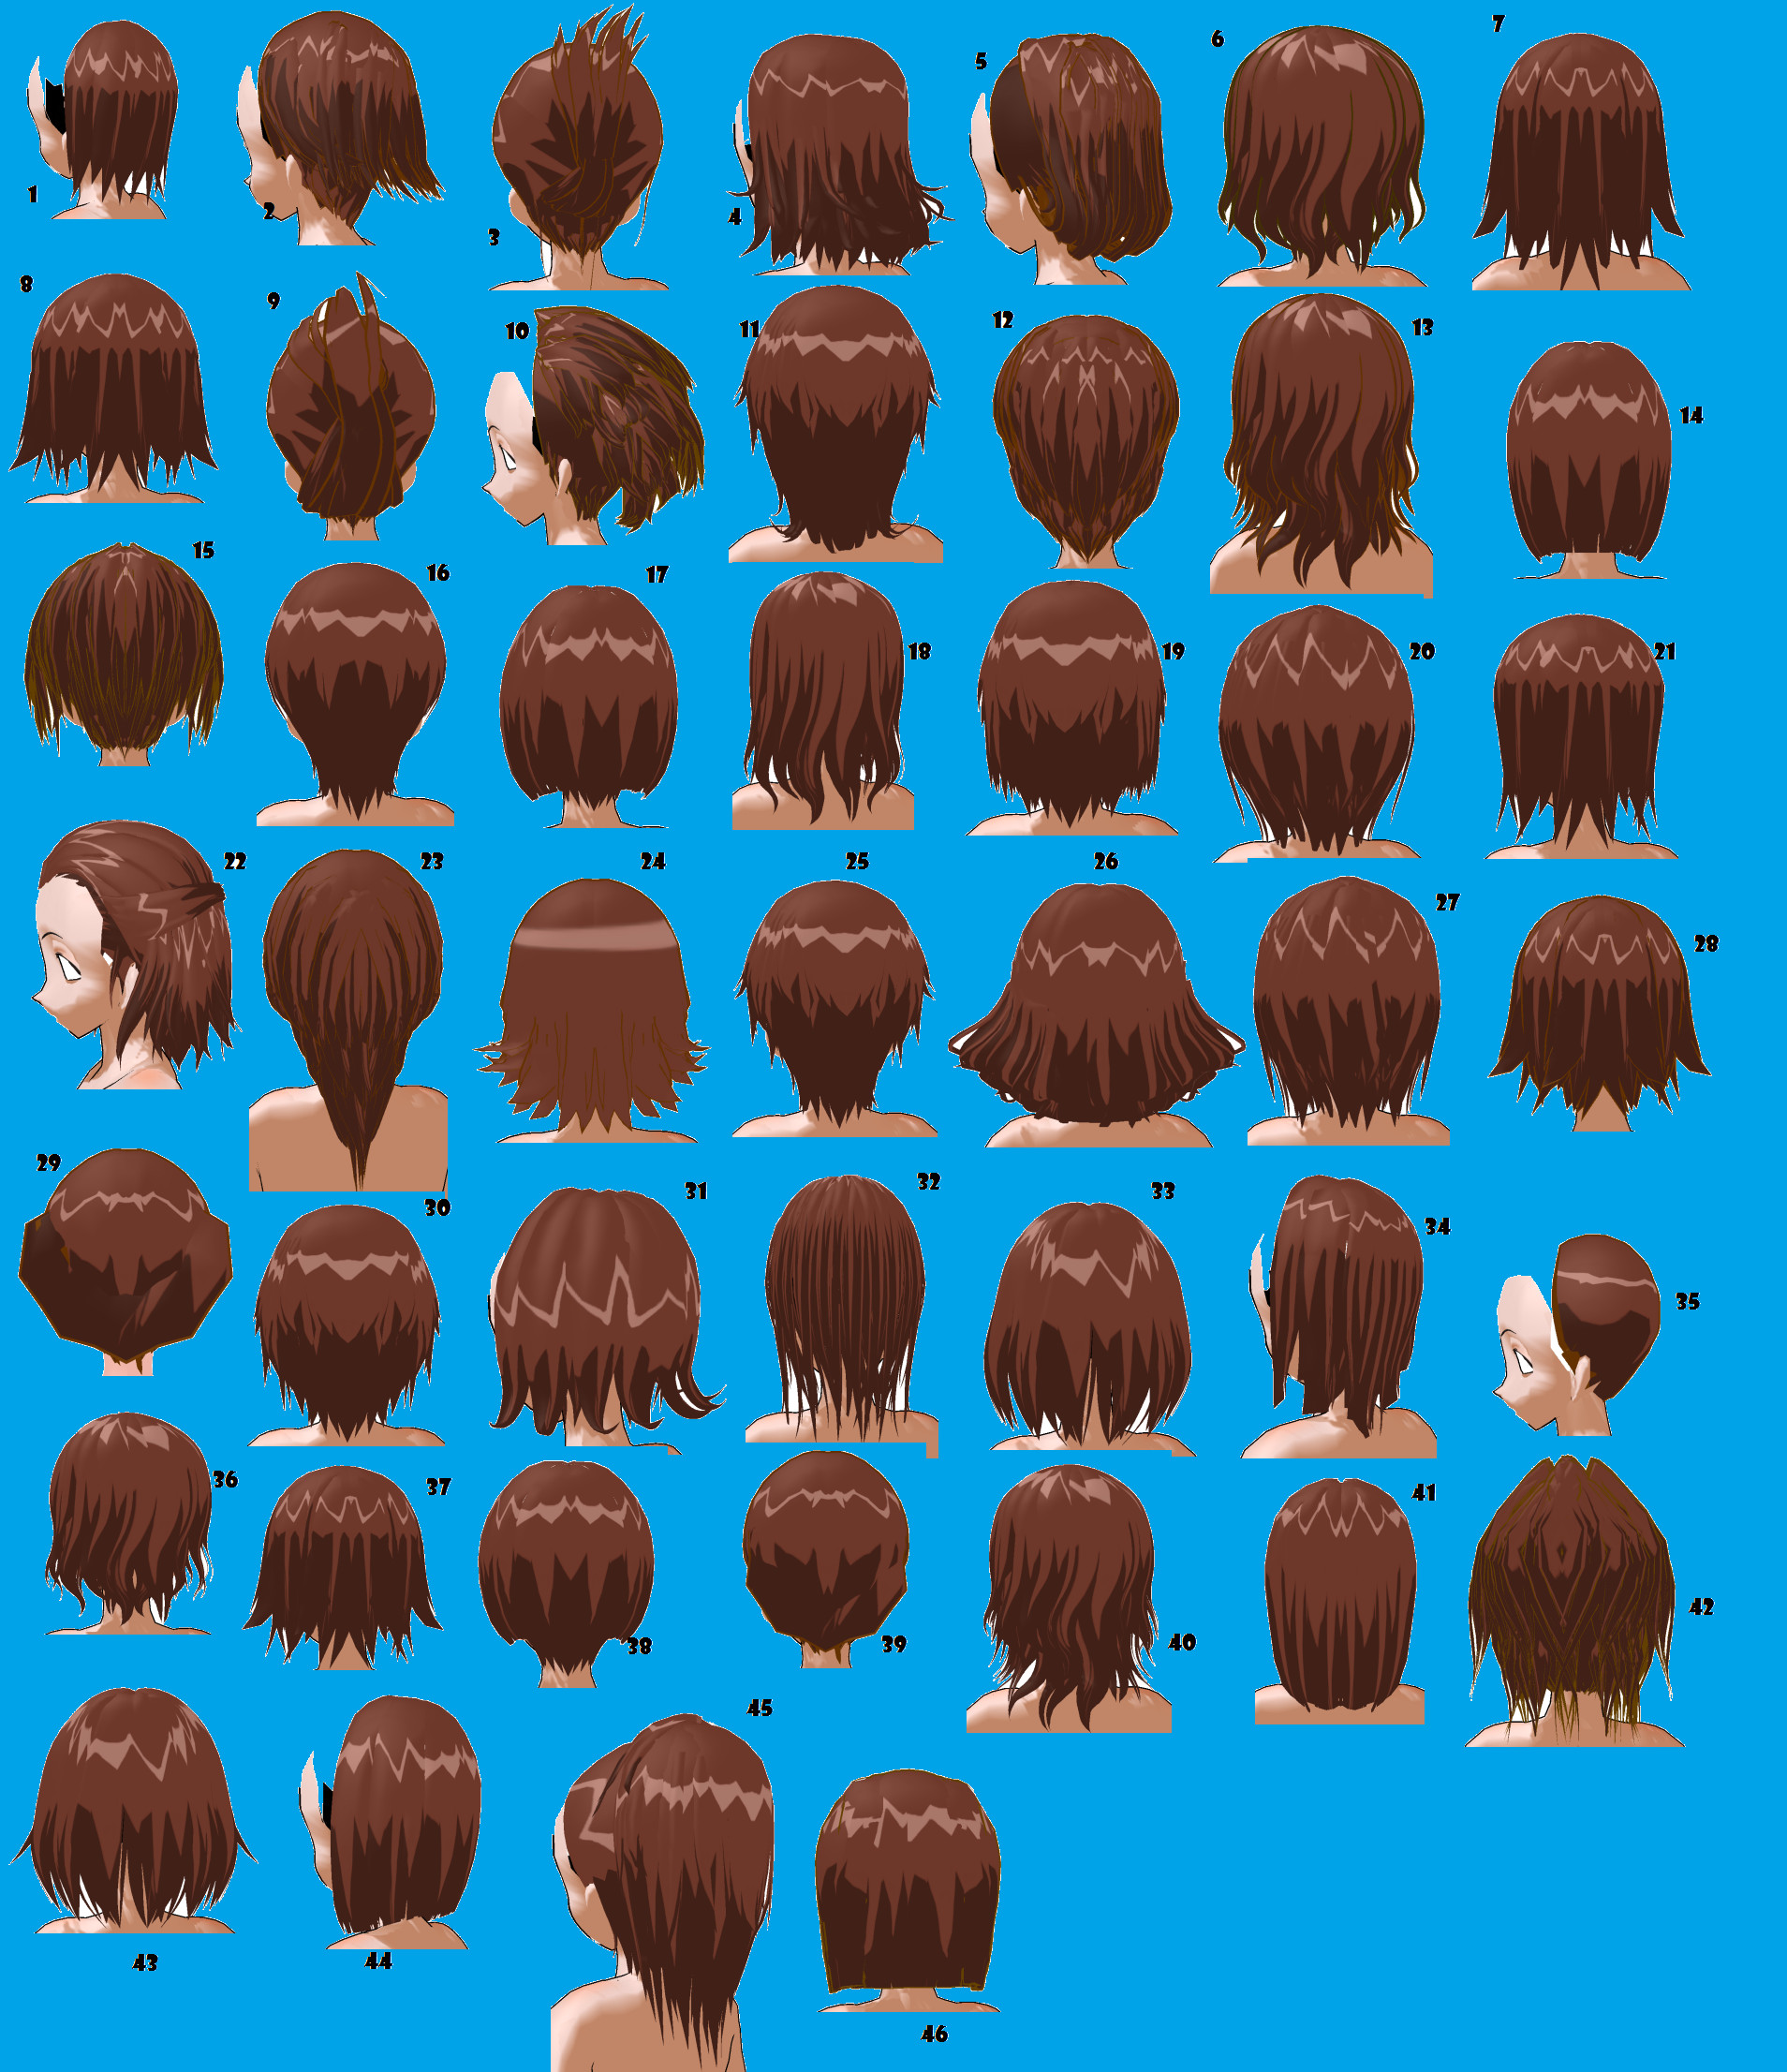 Best ideas about Male To Female Hairstyles . Save or Pin Short Hairstyles Male or Female by MMDxDespair on DeviantArt Now.